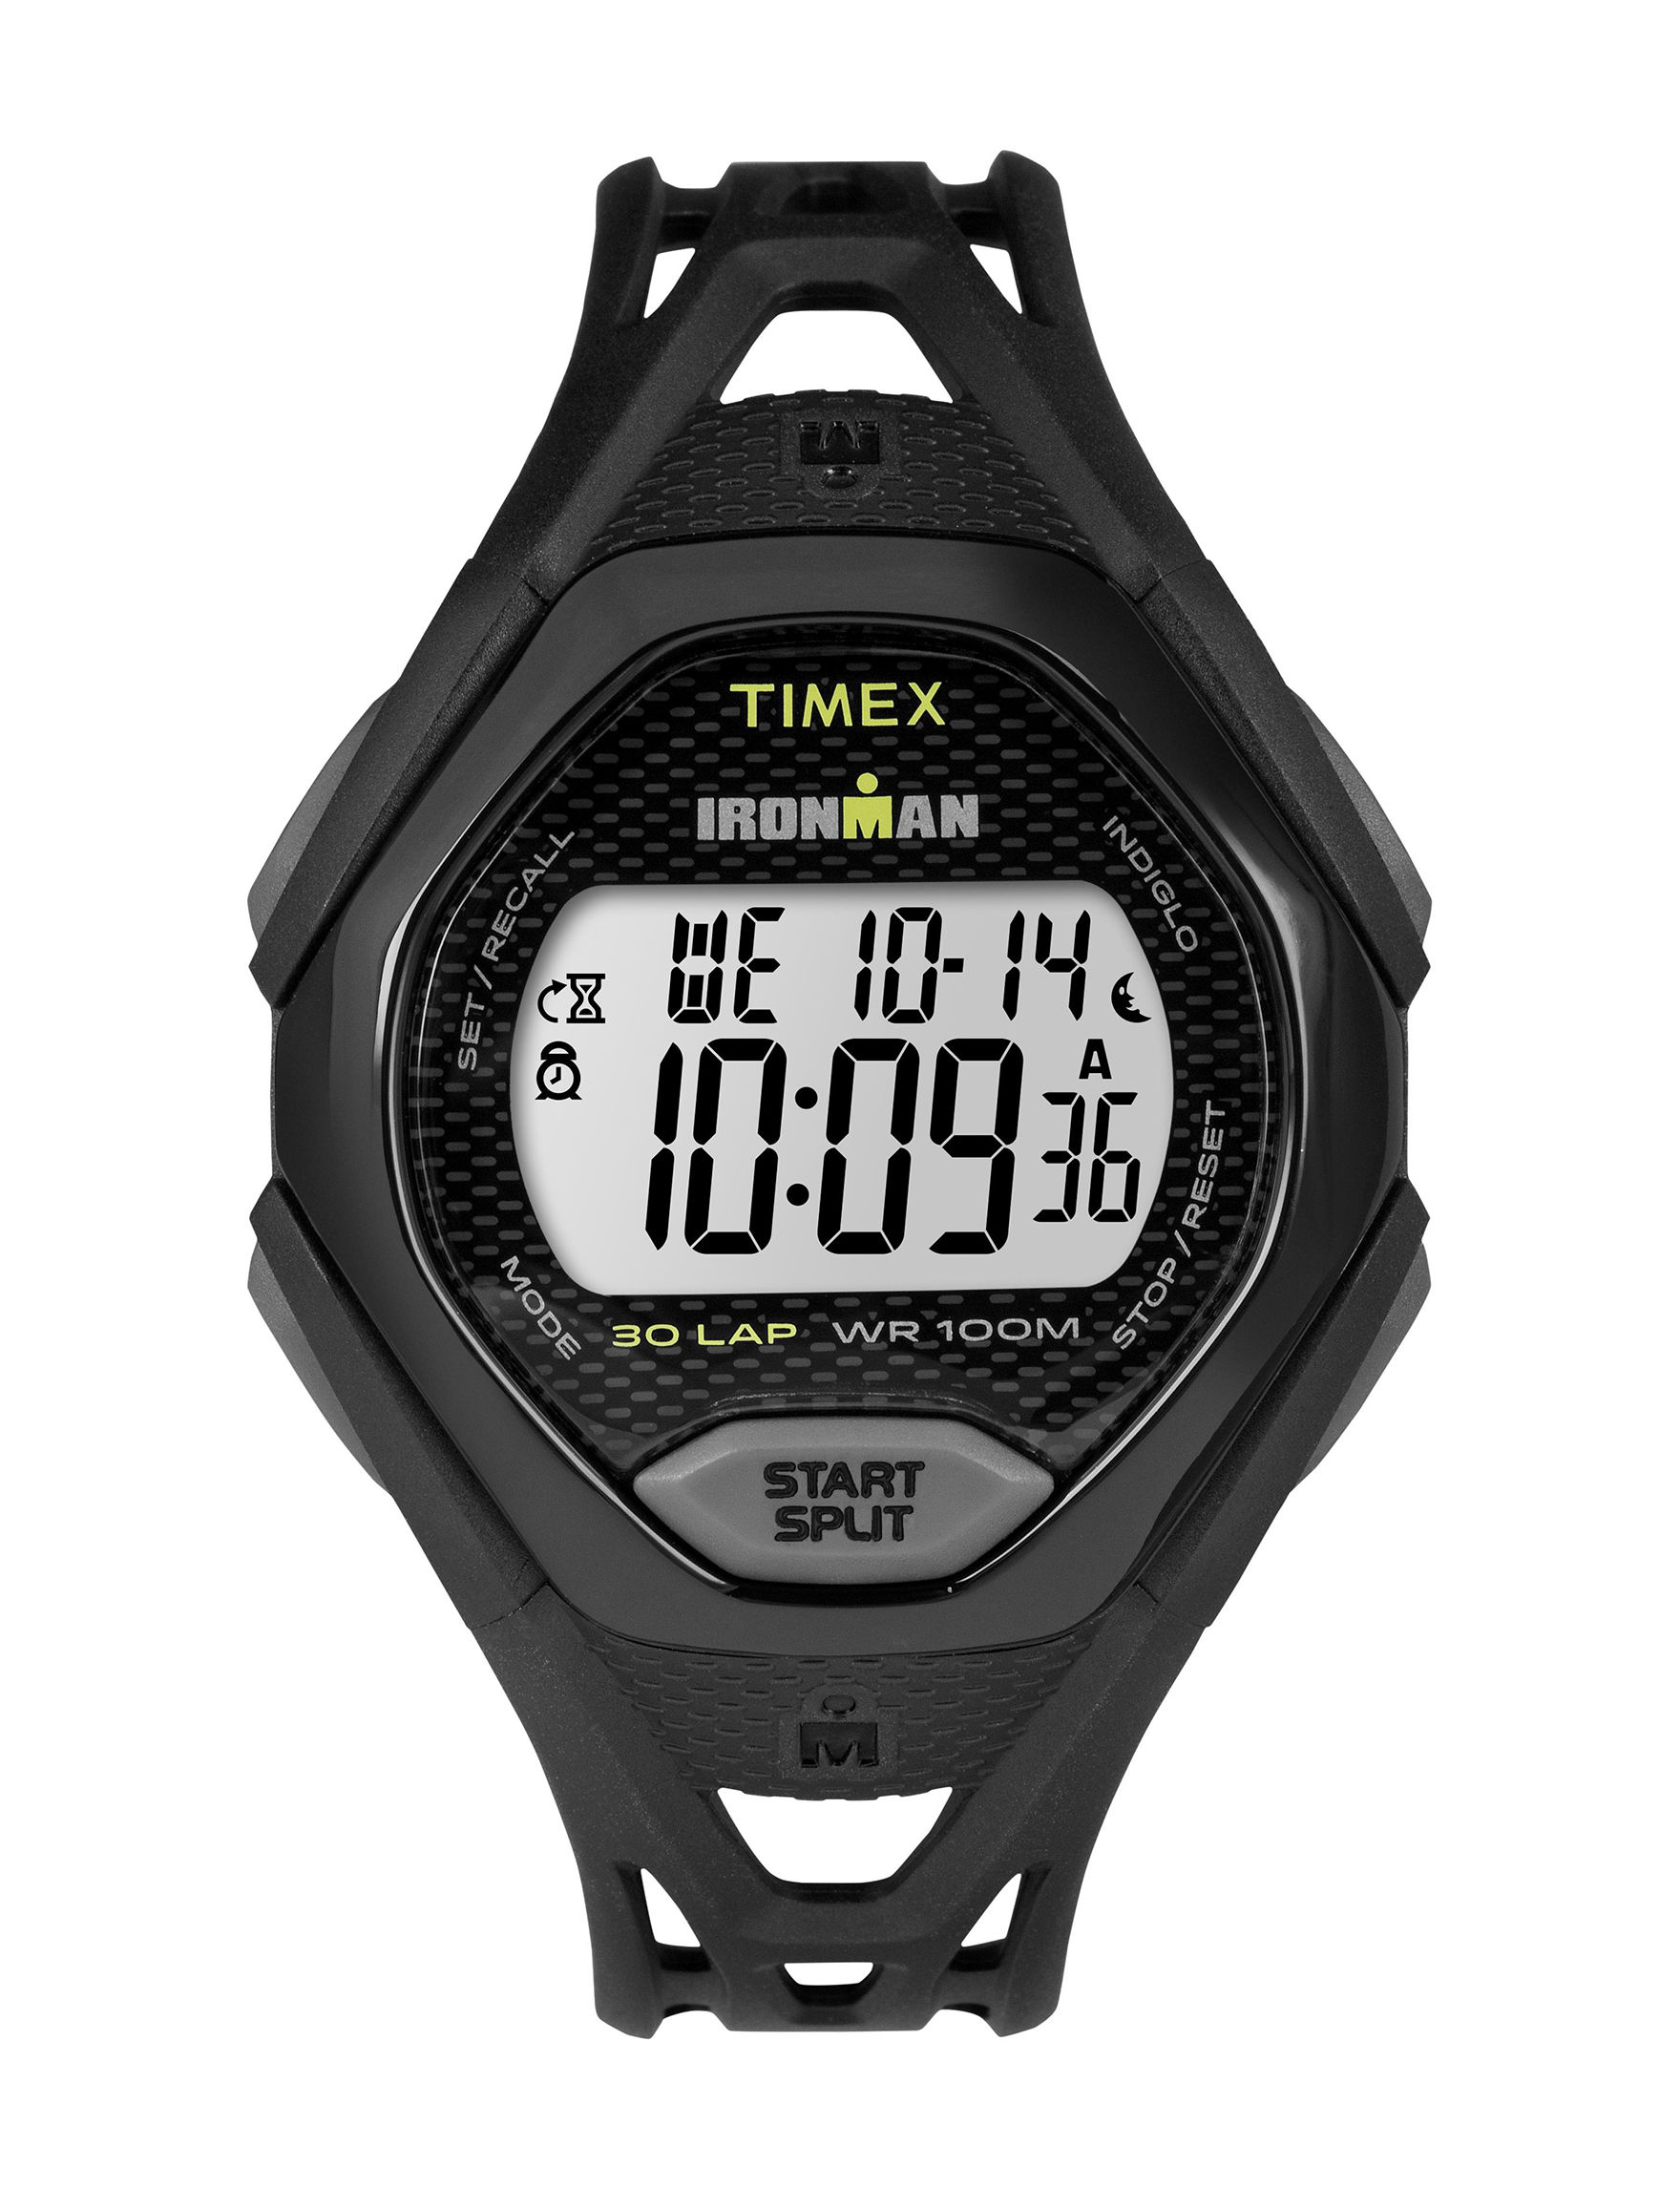 Timex Black Sport Watches Fitness Tech & Tracking